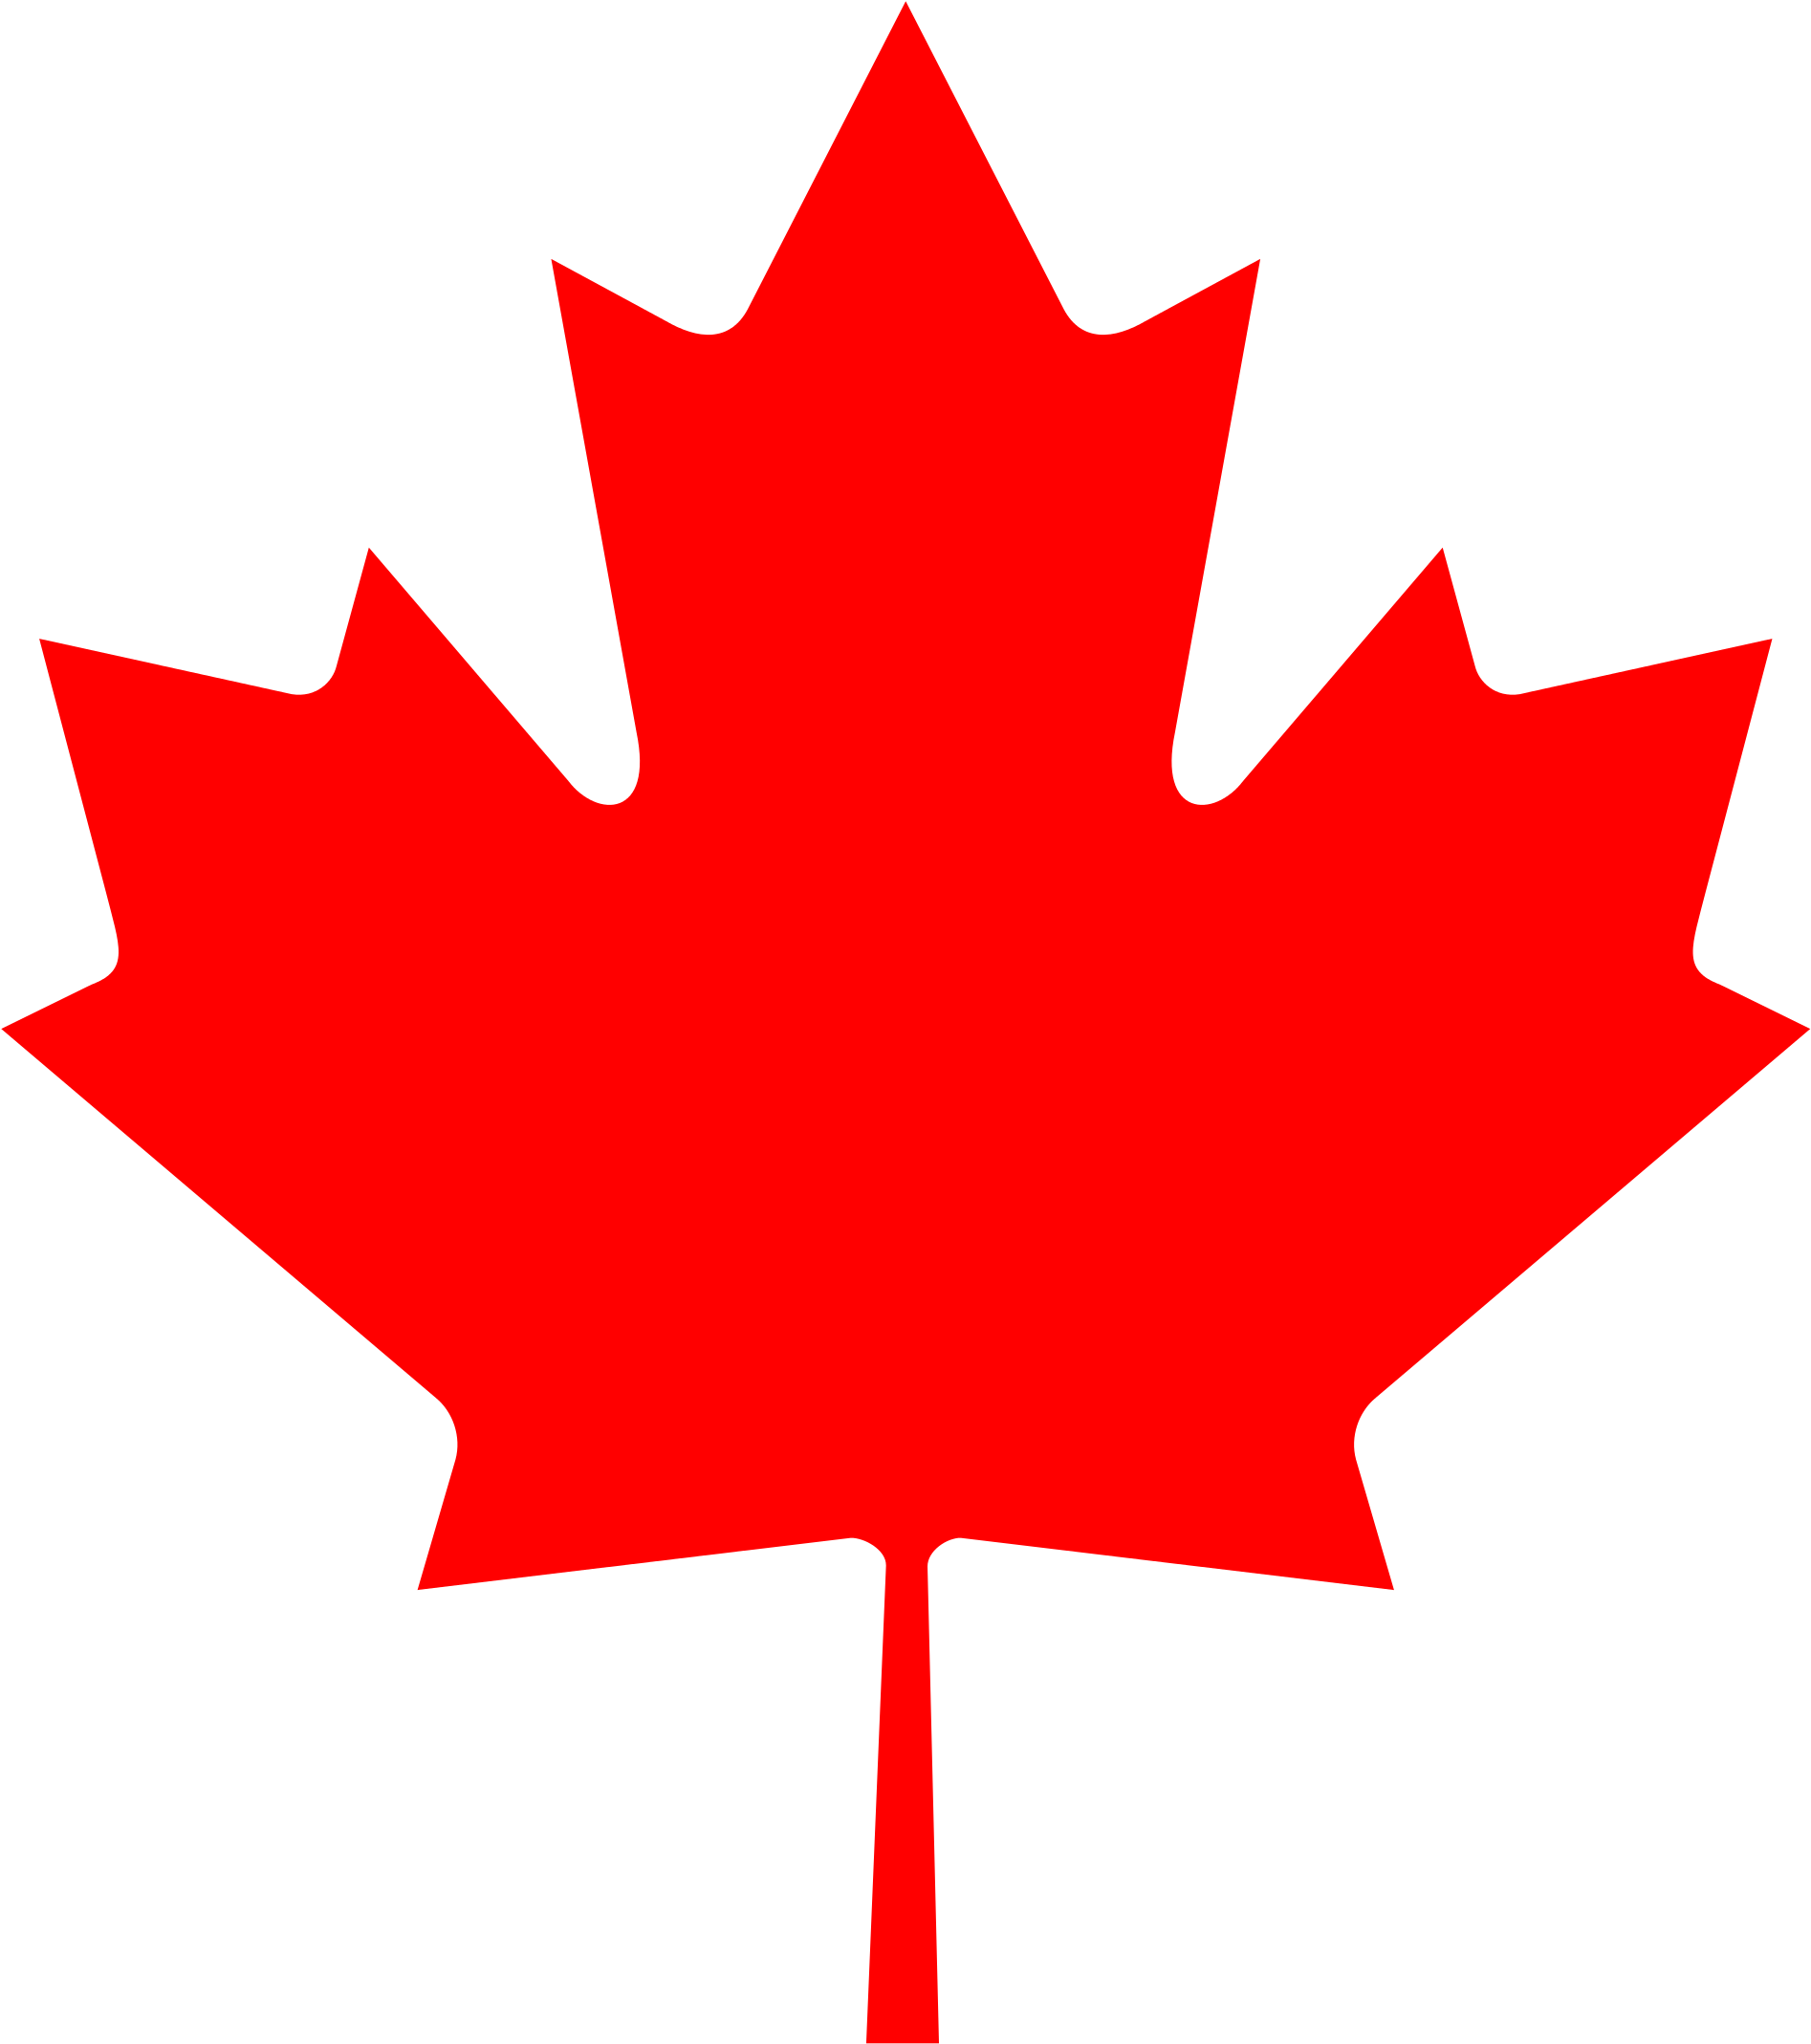 Canadian Maple Leaf icon